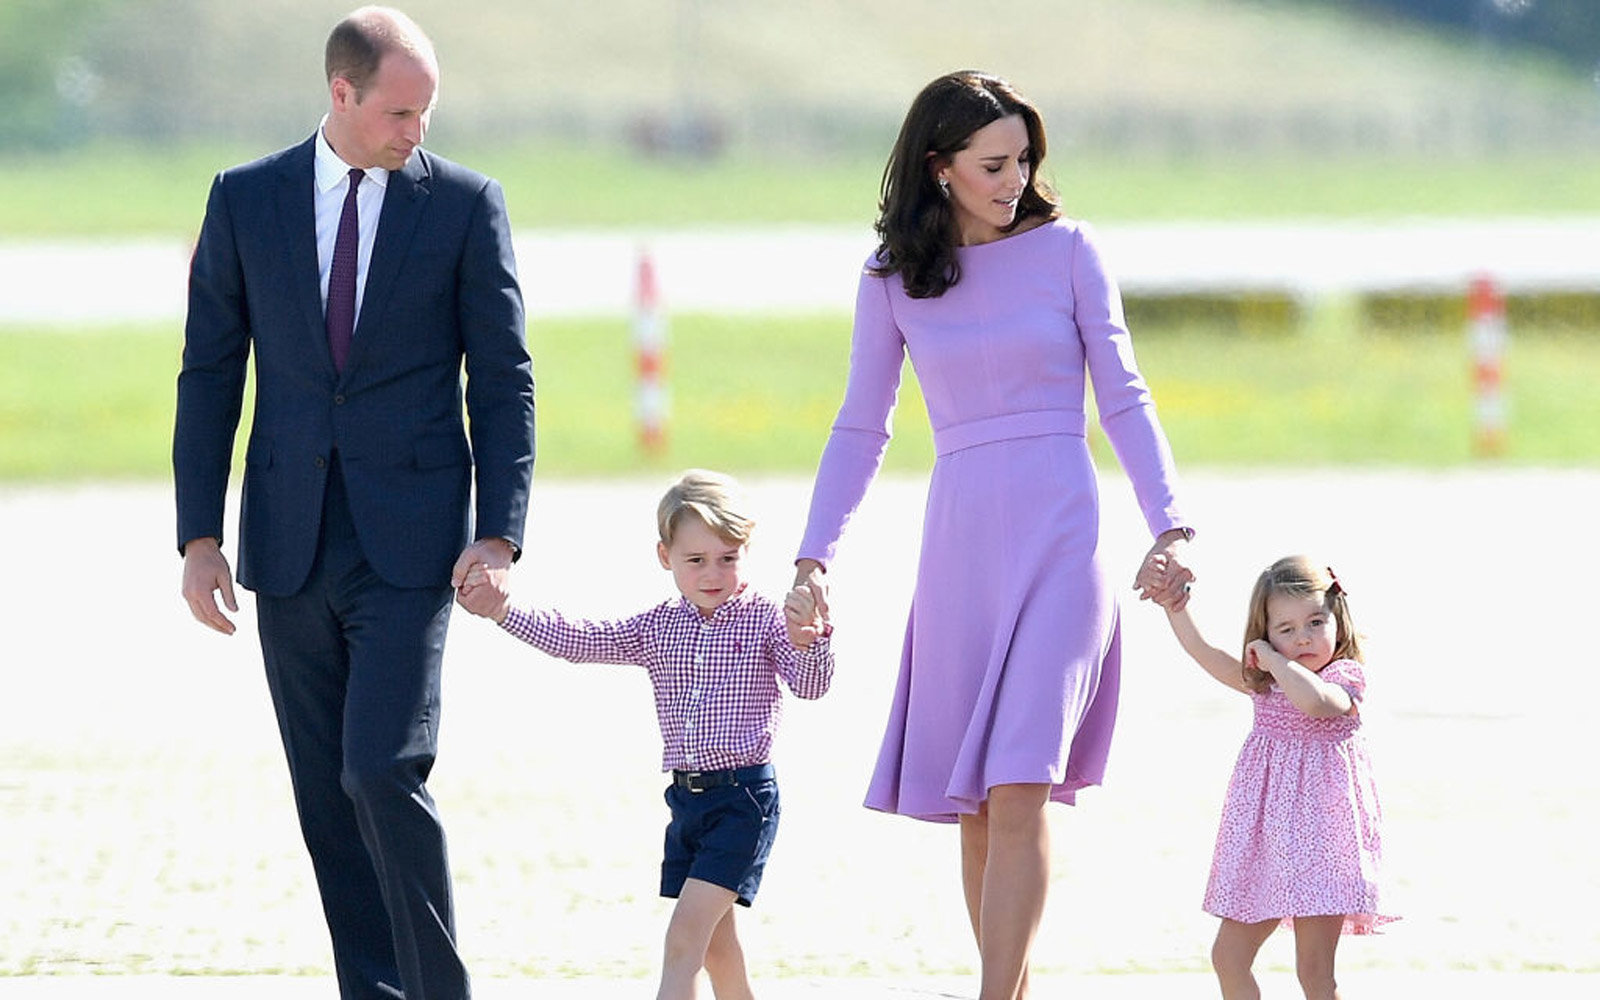 HAMBURG, GERMANY - JULY 21:  Prince William, Duke of Cambridge, Catherine, Duchess of Cambridge, Prince George of Cambridge and Princess Charlotte of Cambridge view helicopter models H145 and H135 before departing from Hamburg airport on the last day of t